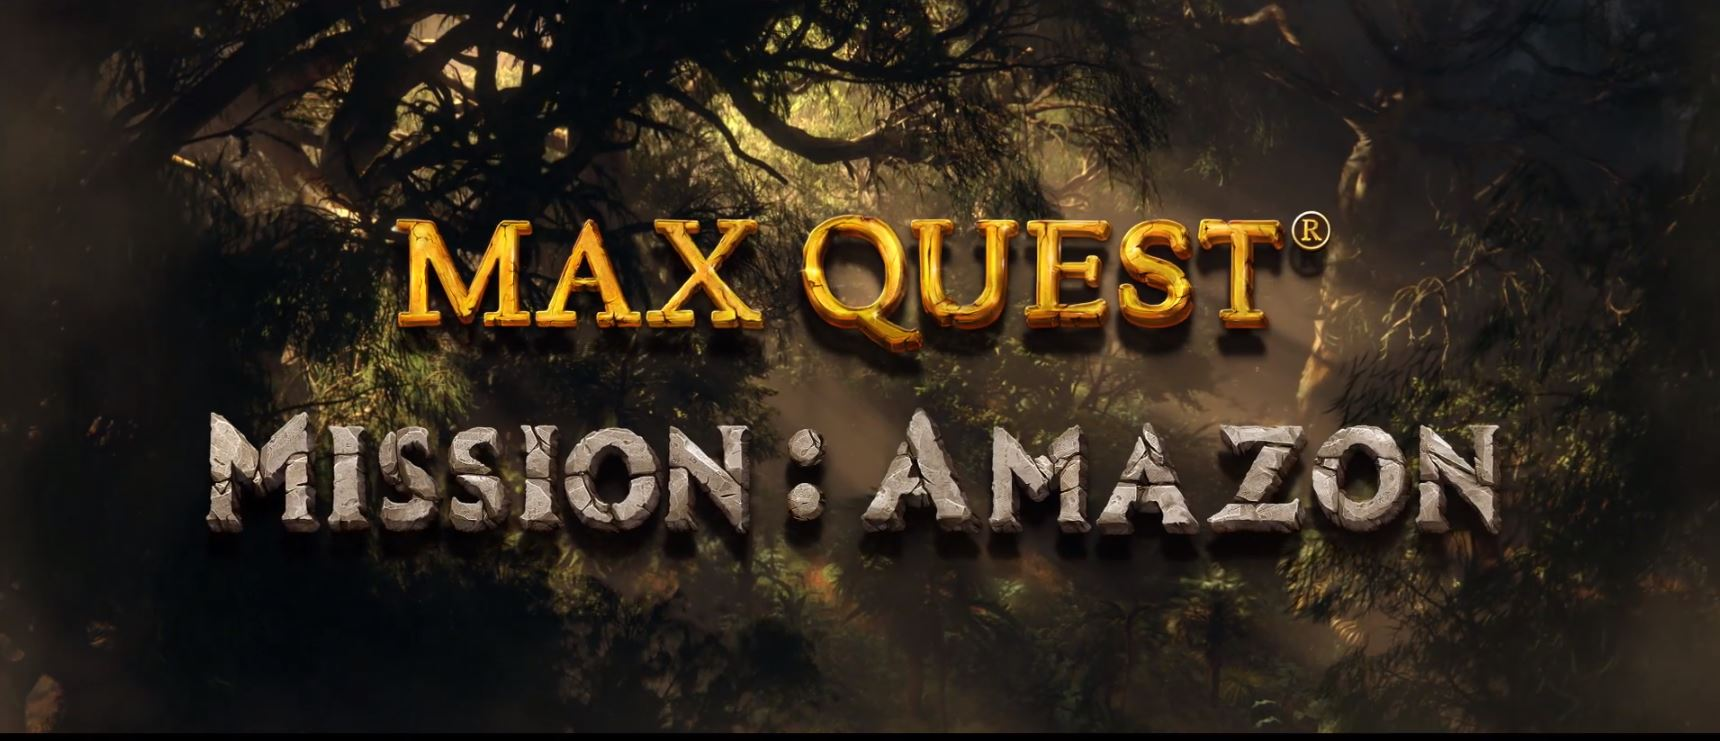 max quest mission amazon slot by betsoft